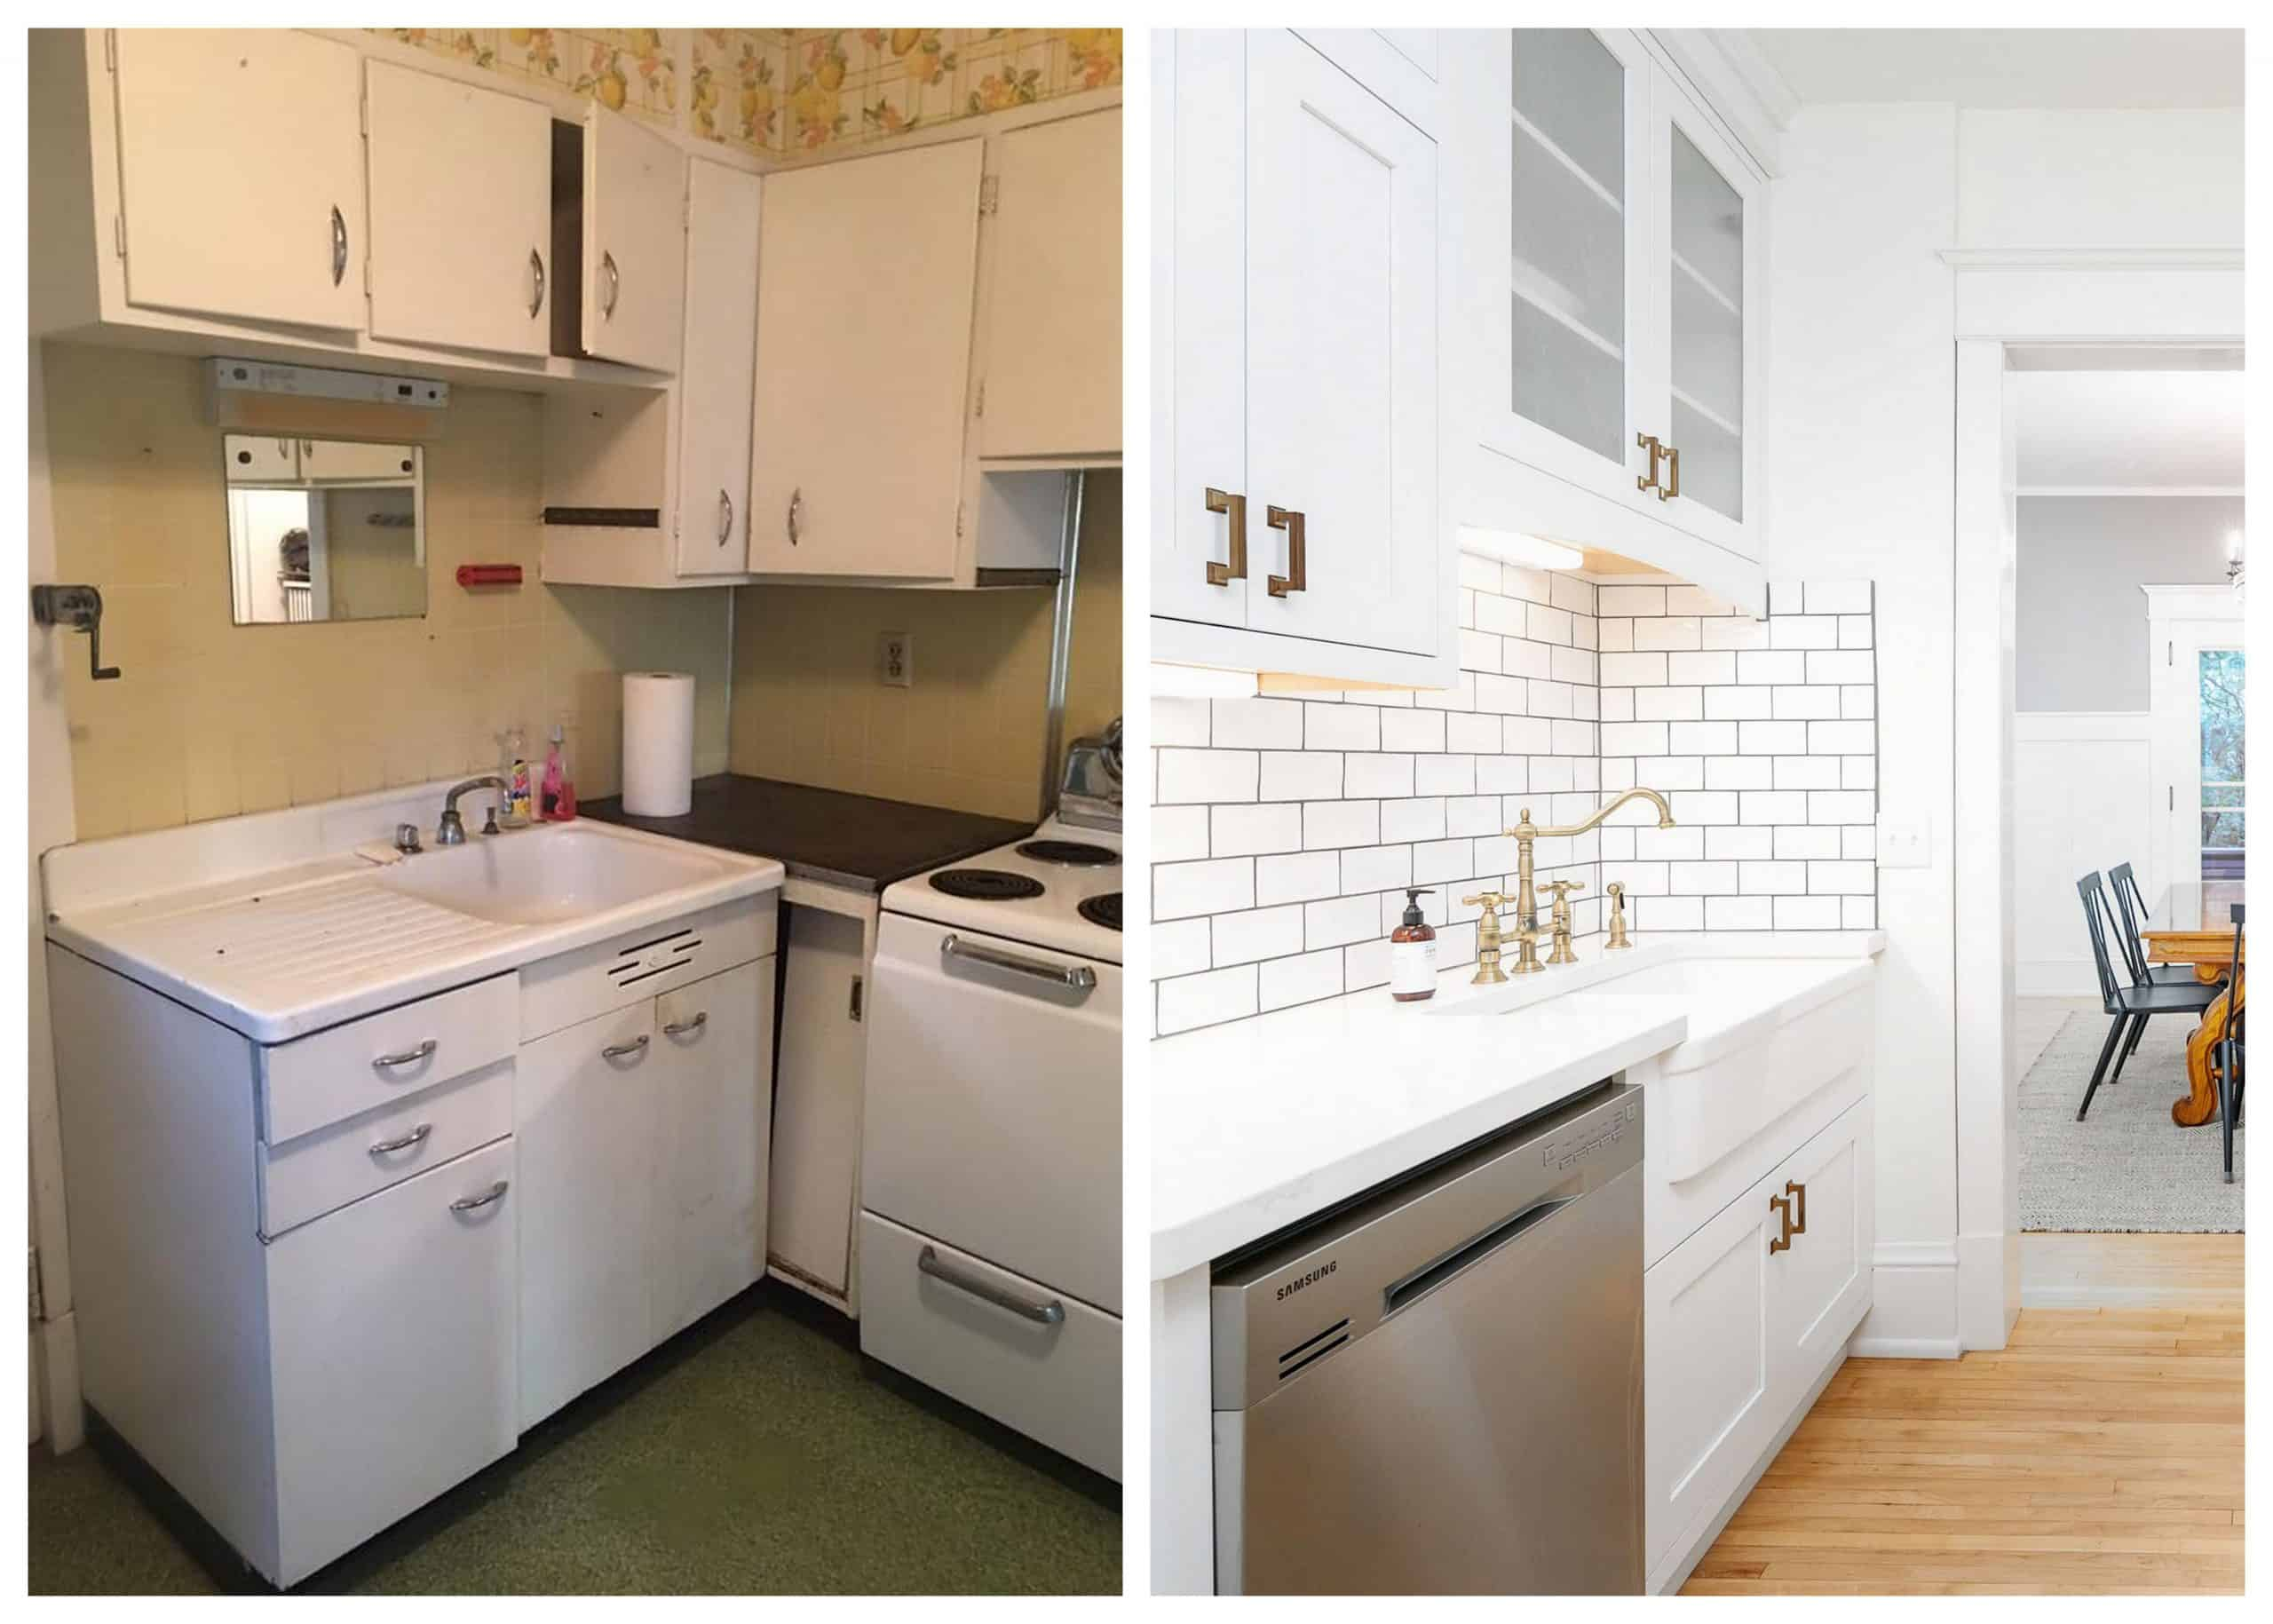 Old Home Kitchen Before and After